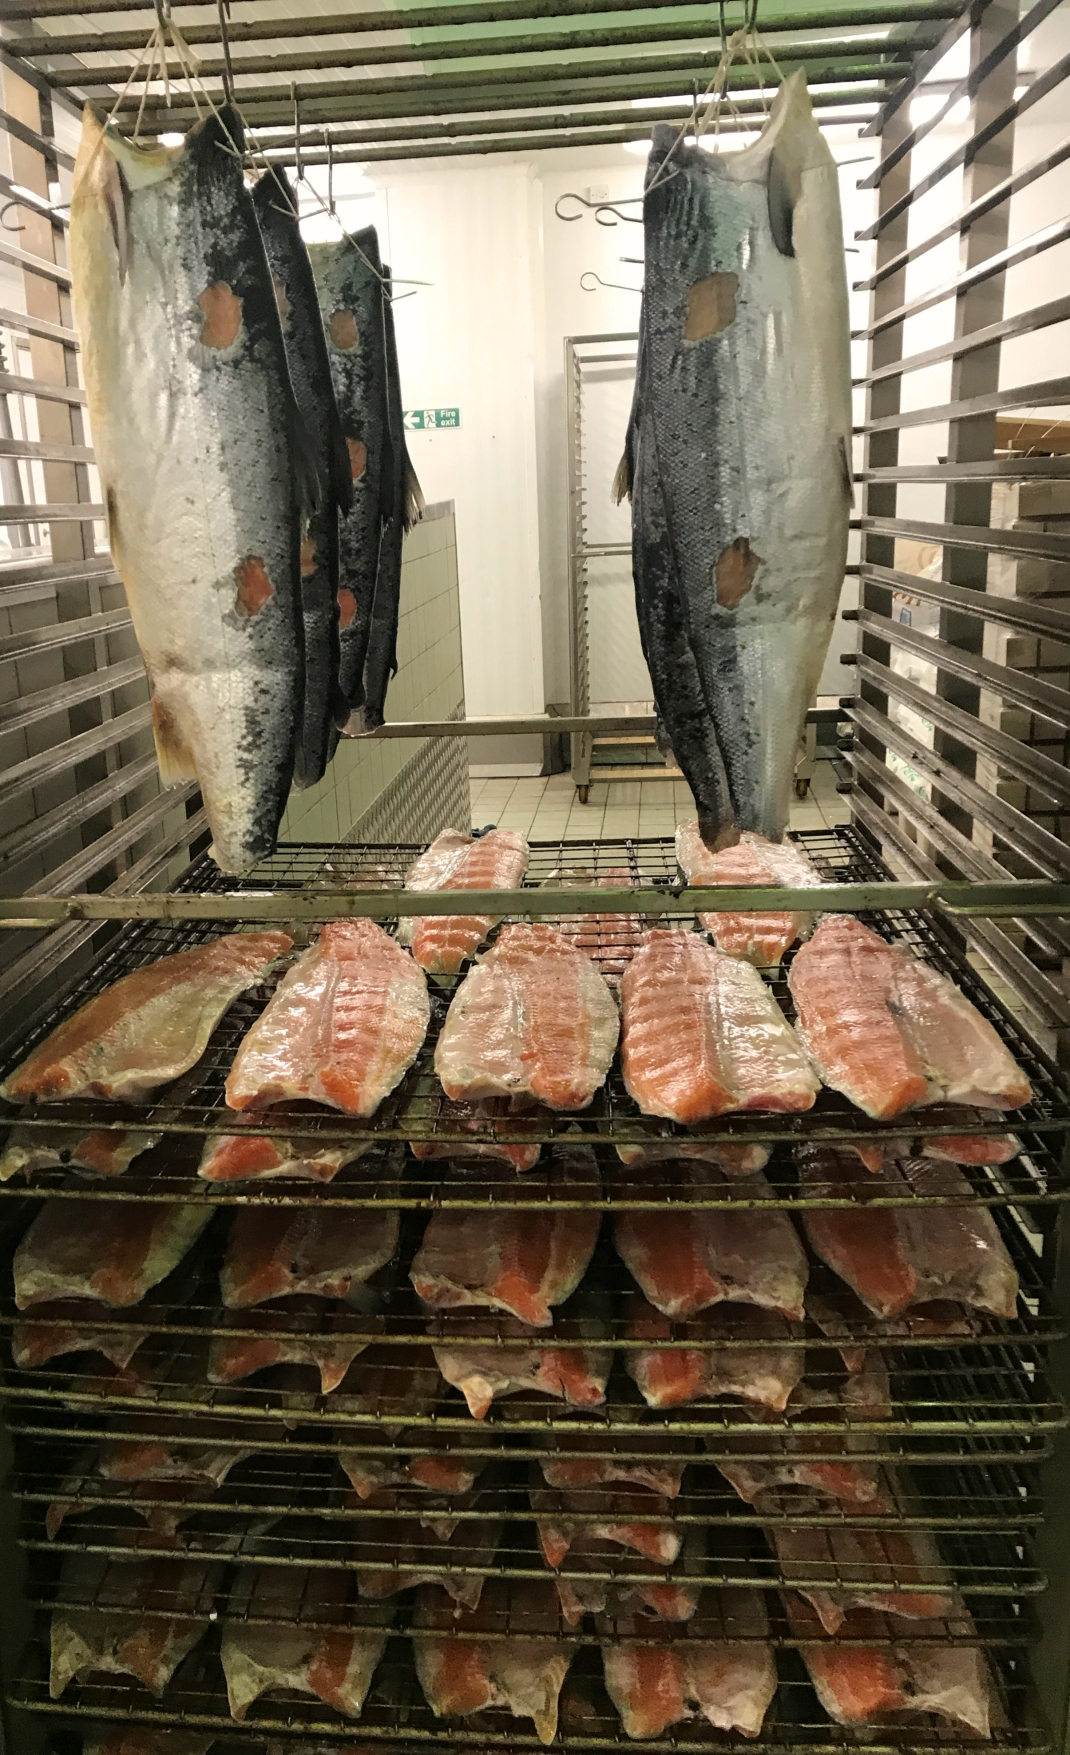 4. Salmon before smoking